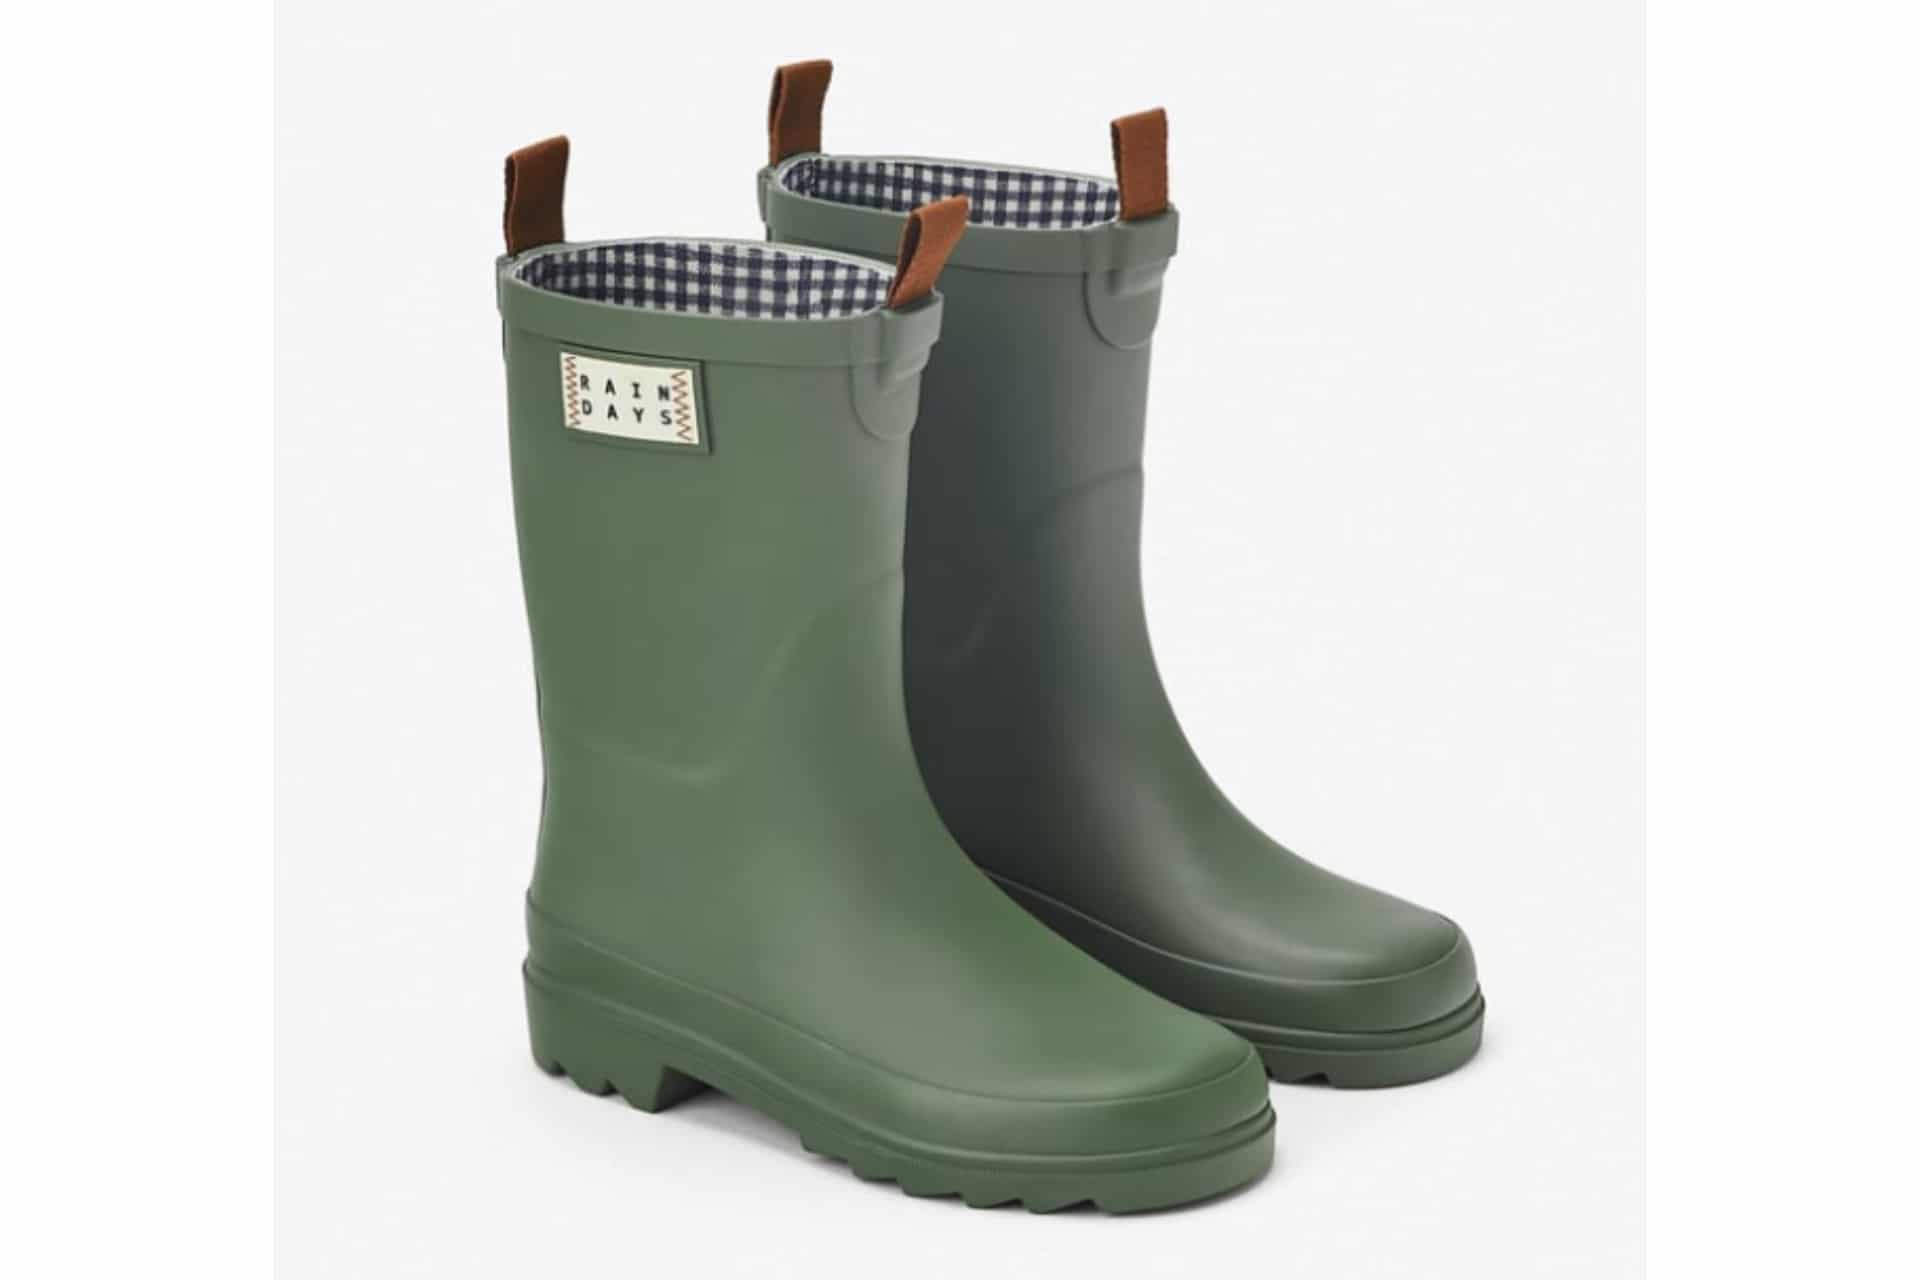 green rain boots with leather pull tab